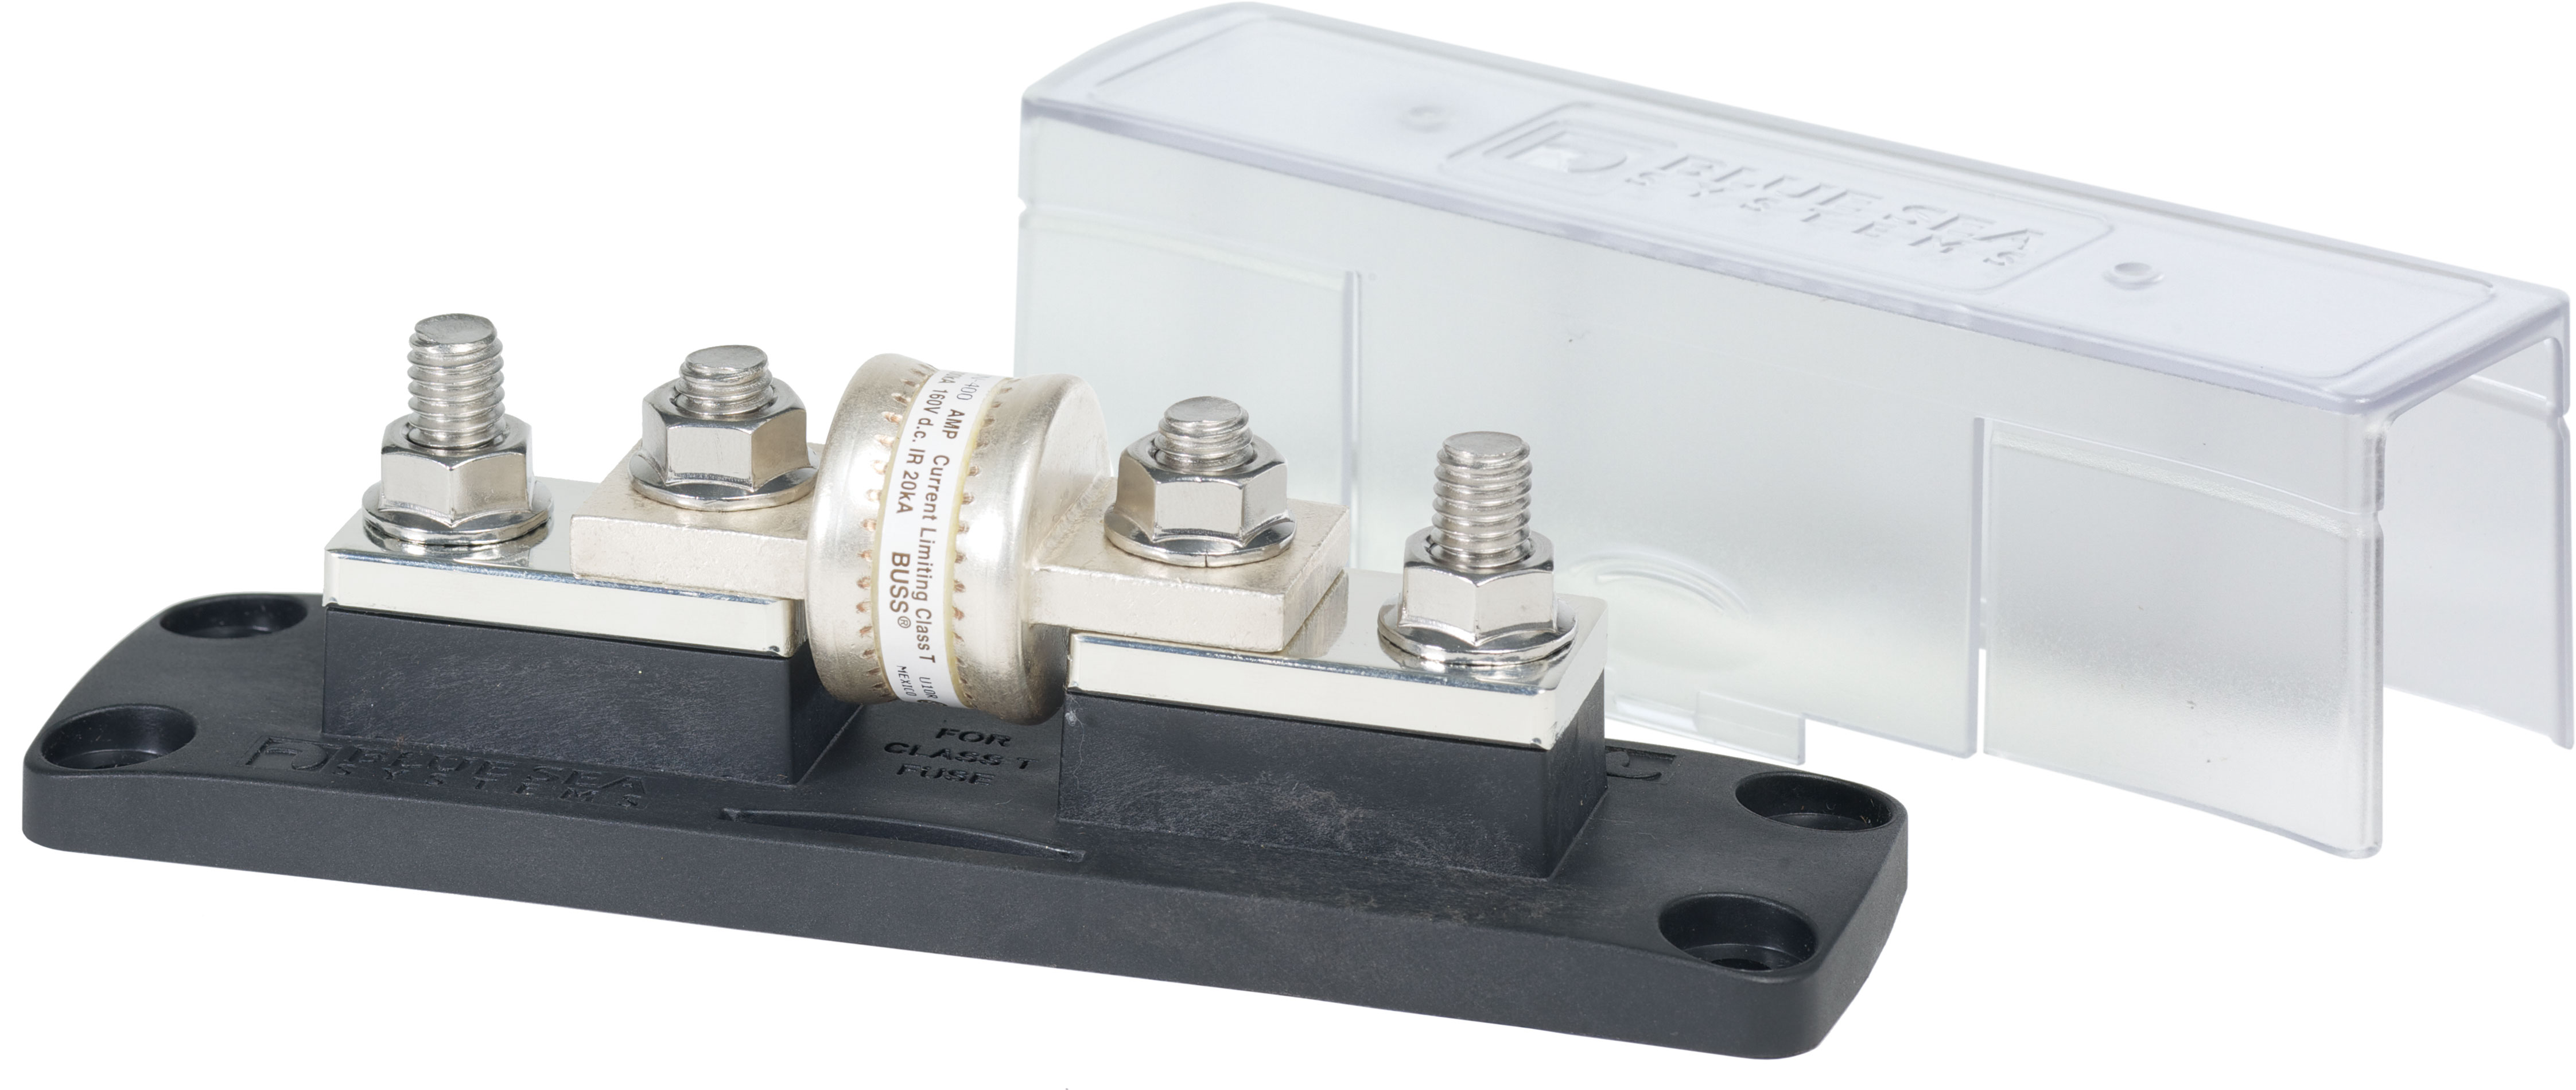 Class T Fuse Block With Insulating Cover 225 To 400a